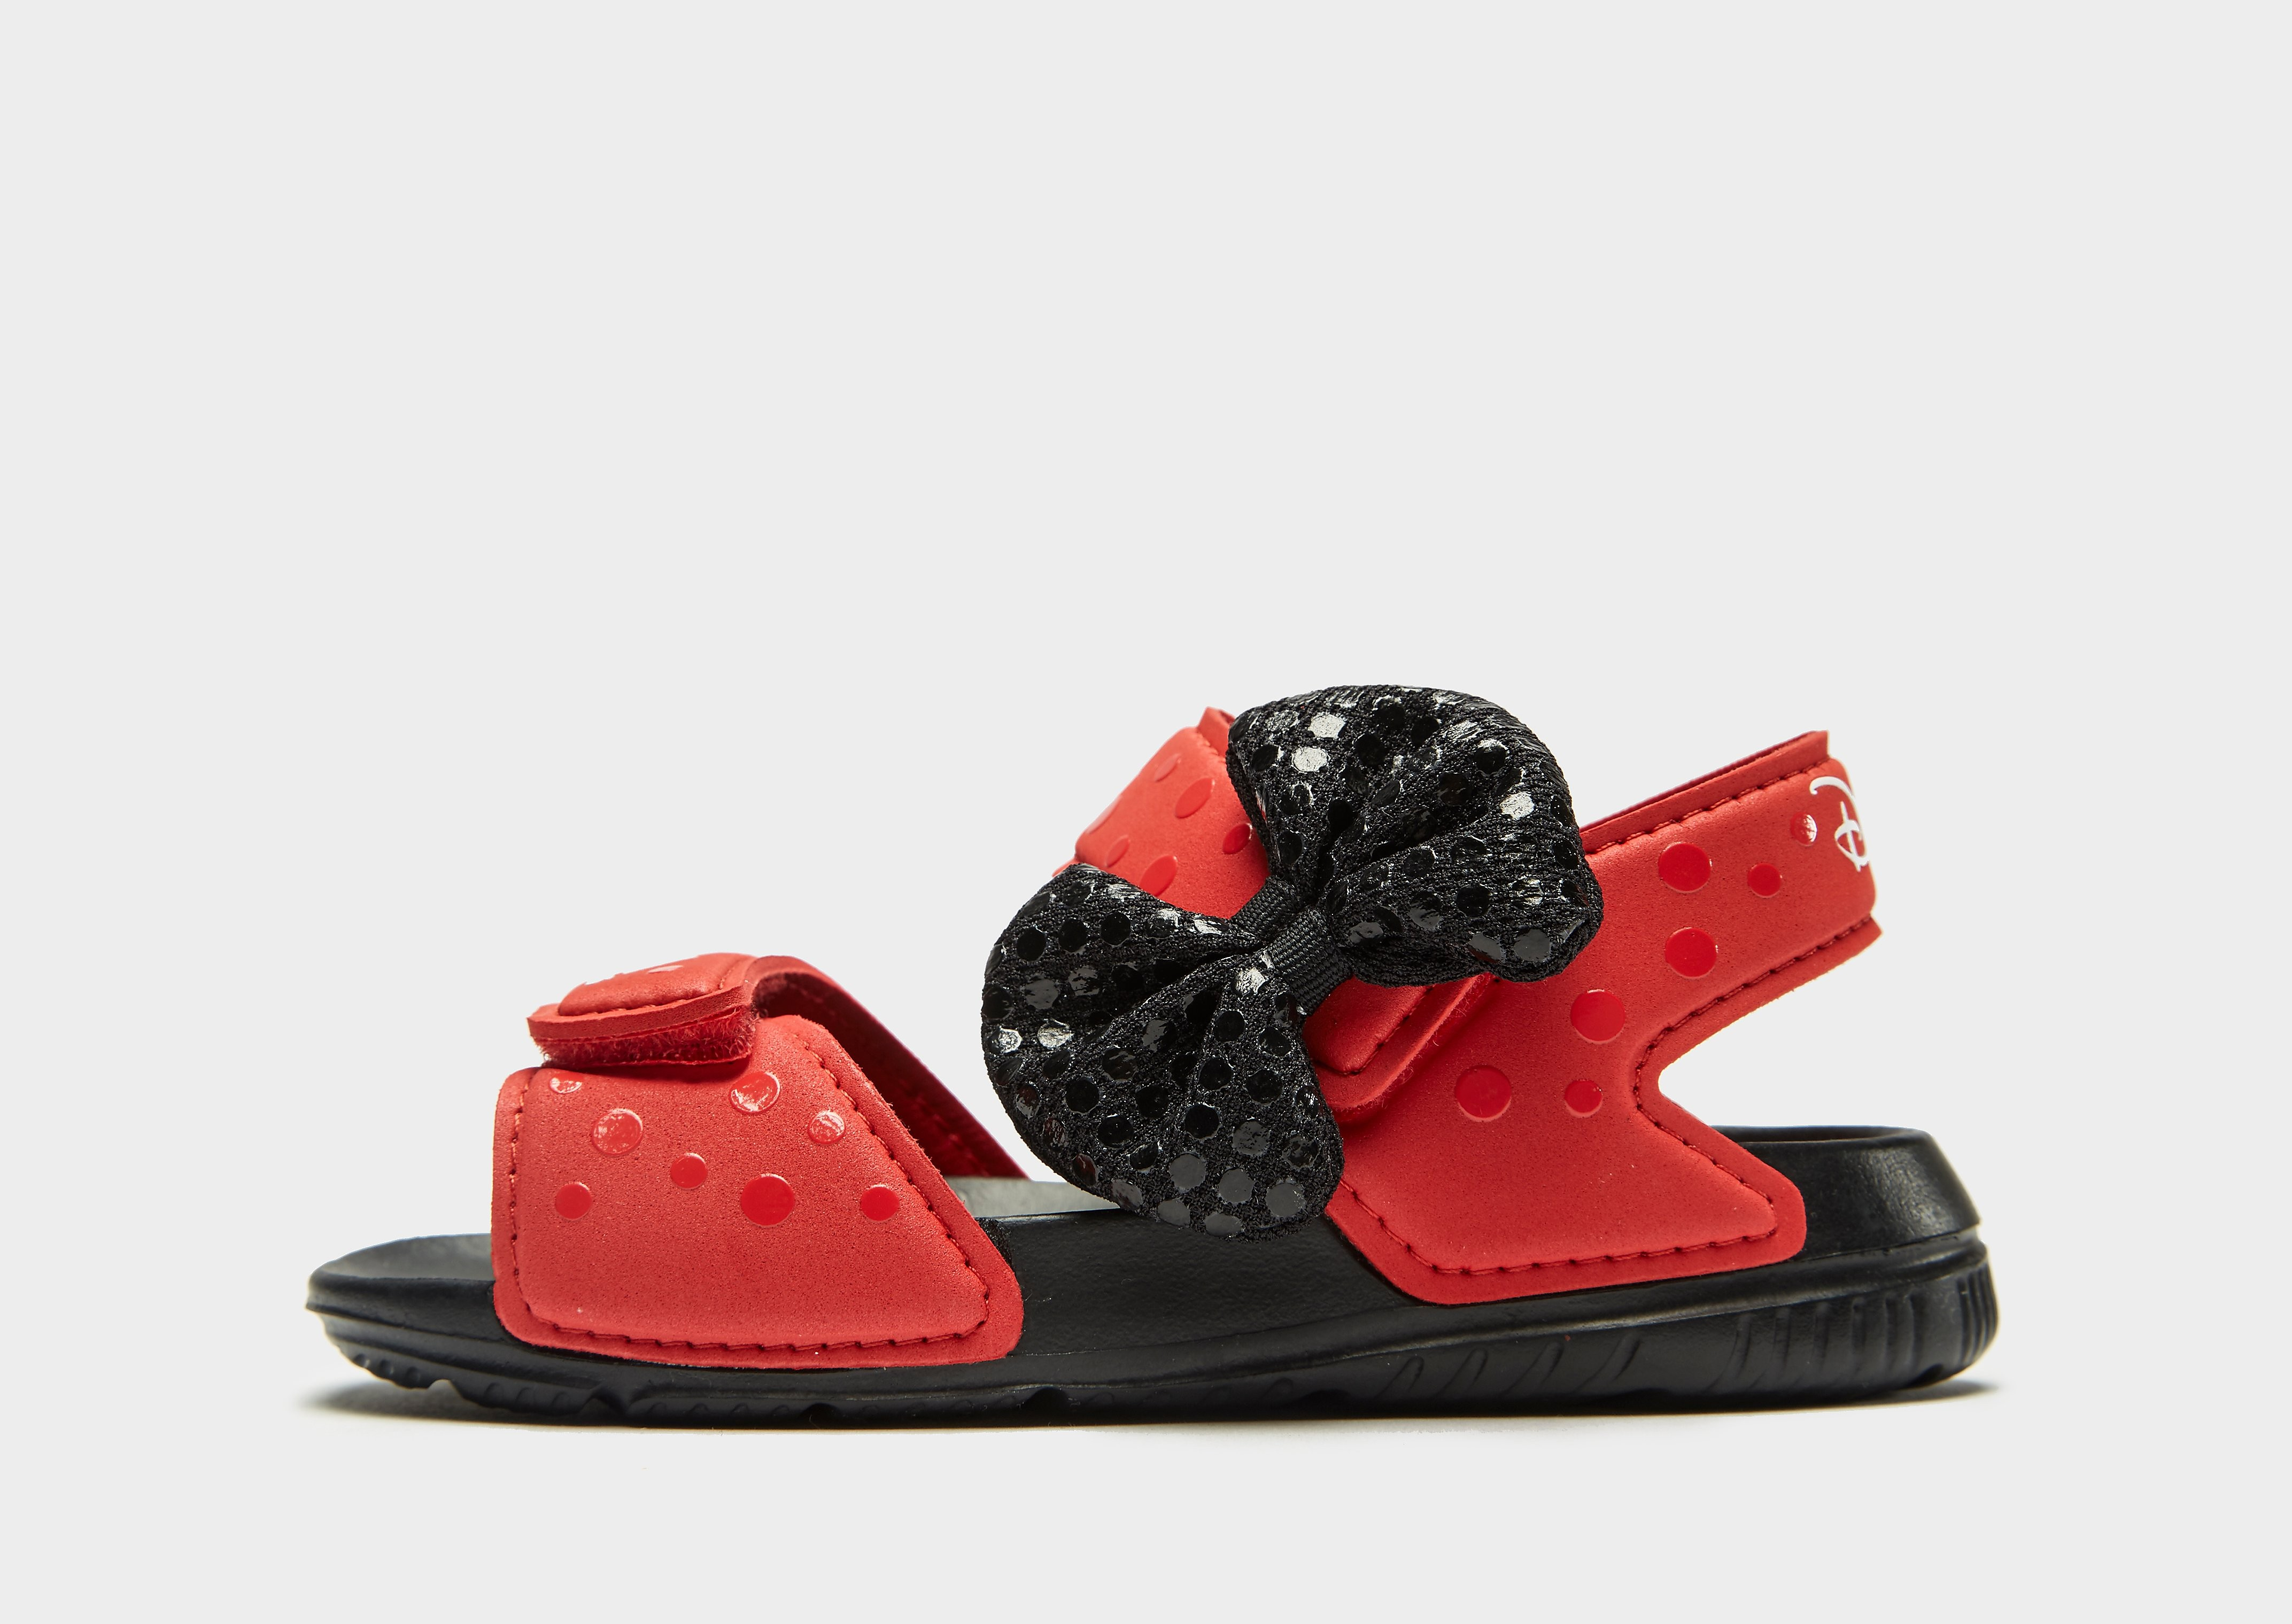 adidas Disney AltaSwim Sandals Infant